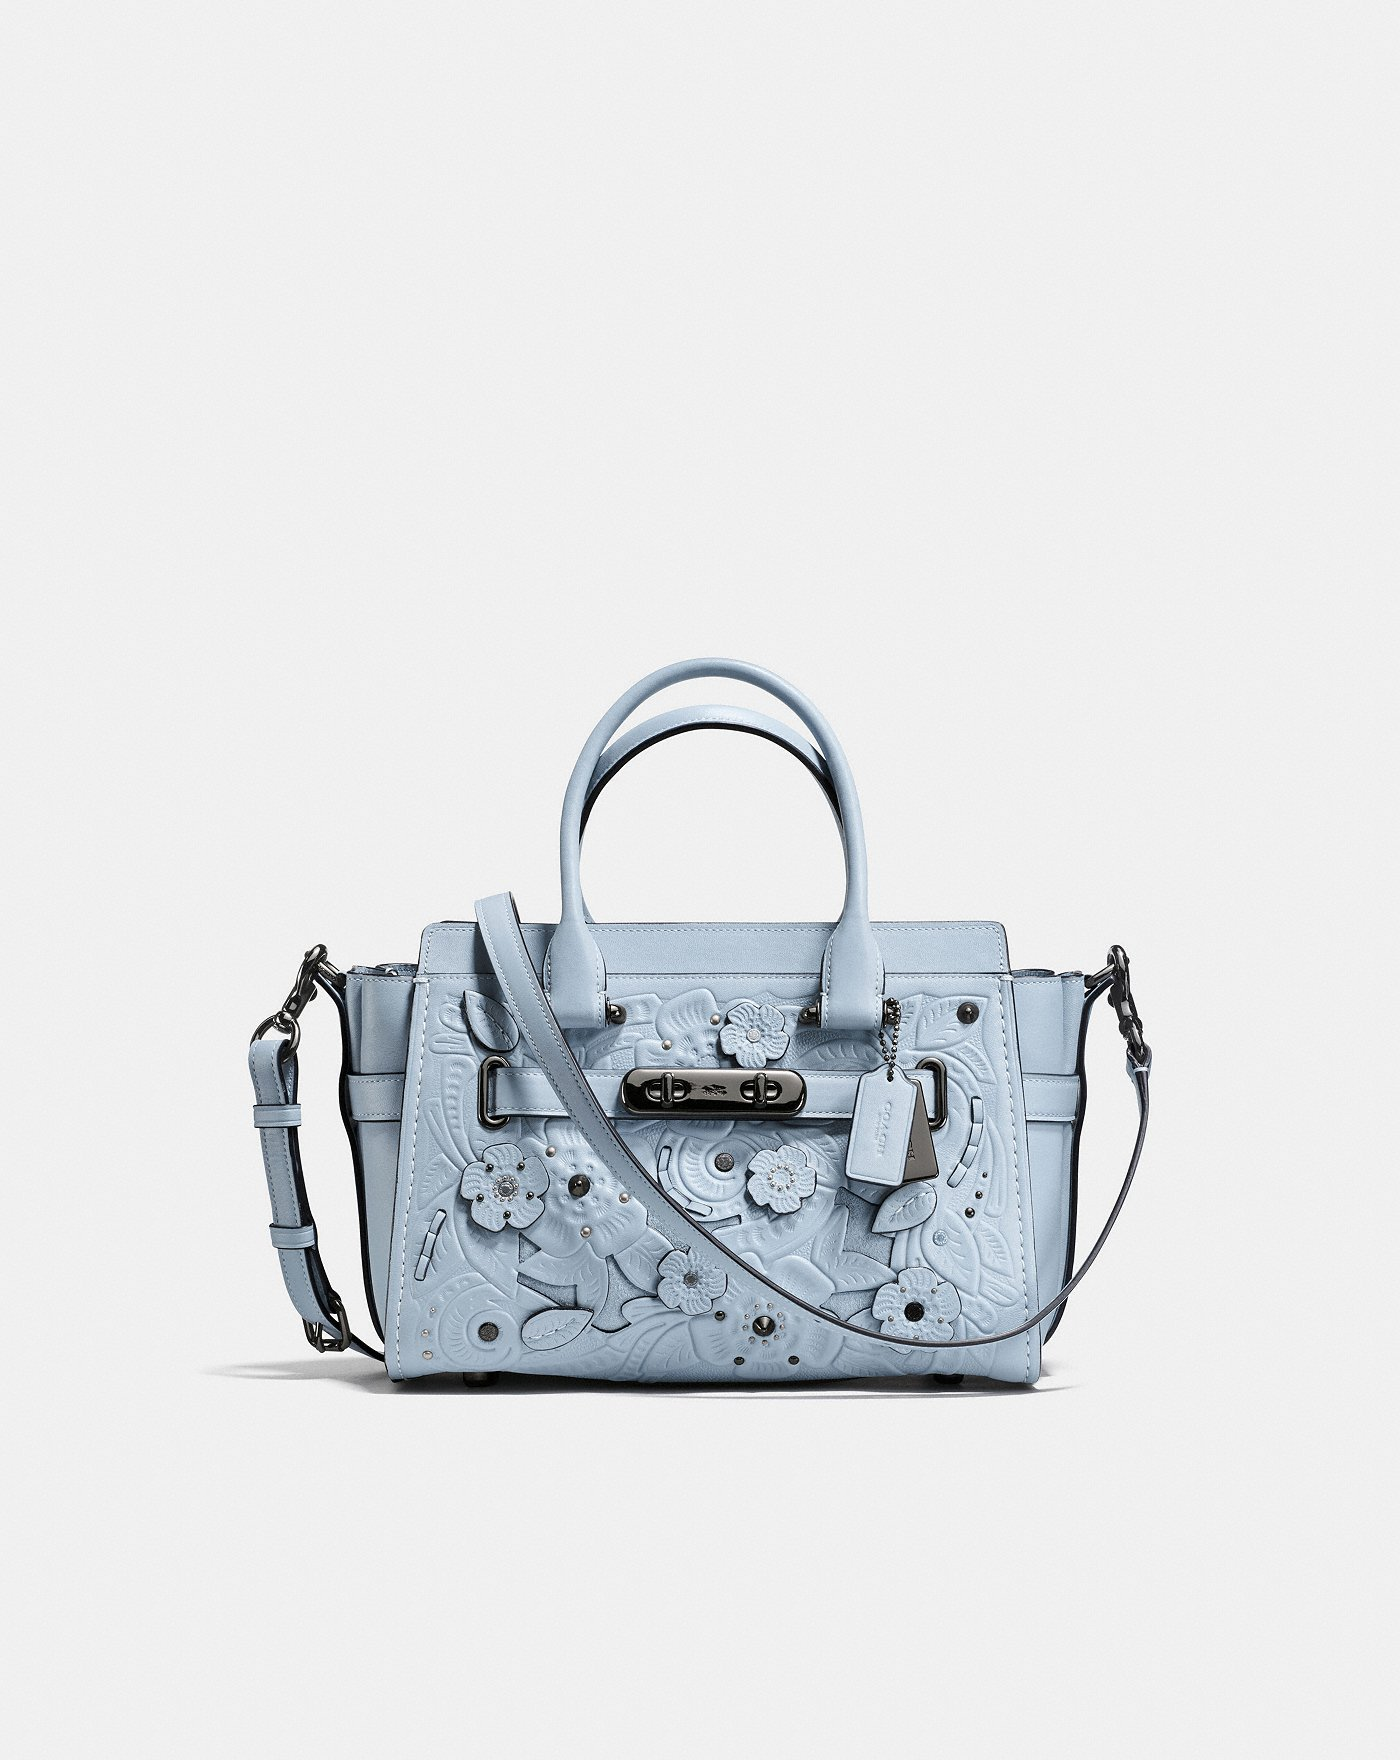 Coach Swagger 27 Bag with Tea Rose Accents in a gorgeous dusty blue | colorful handbags for fall